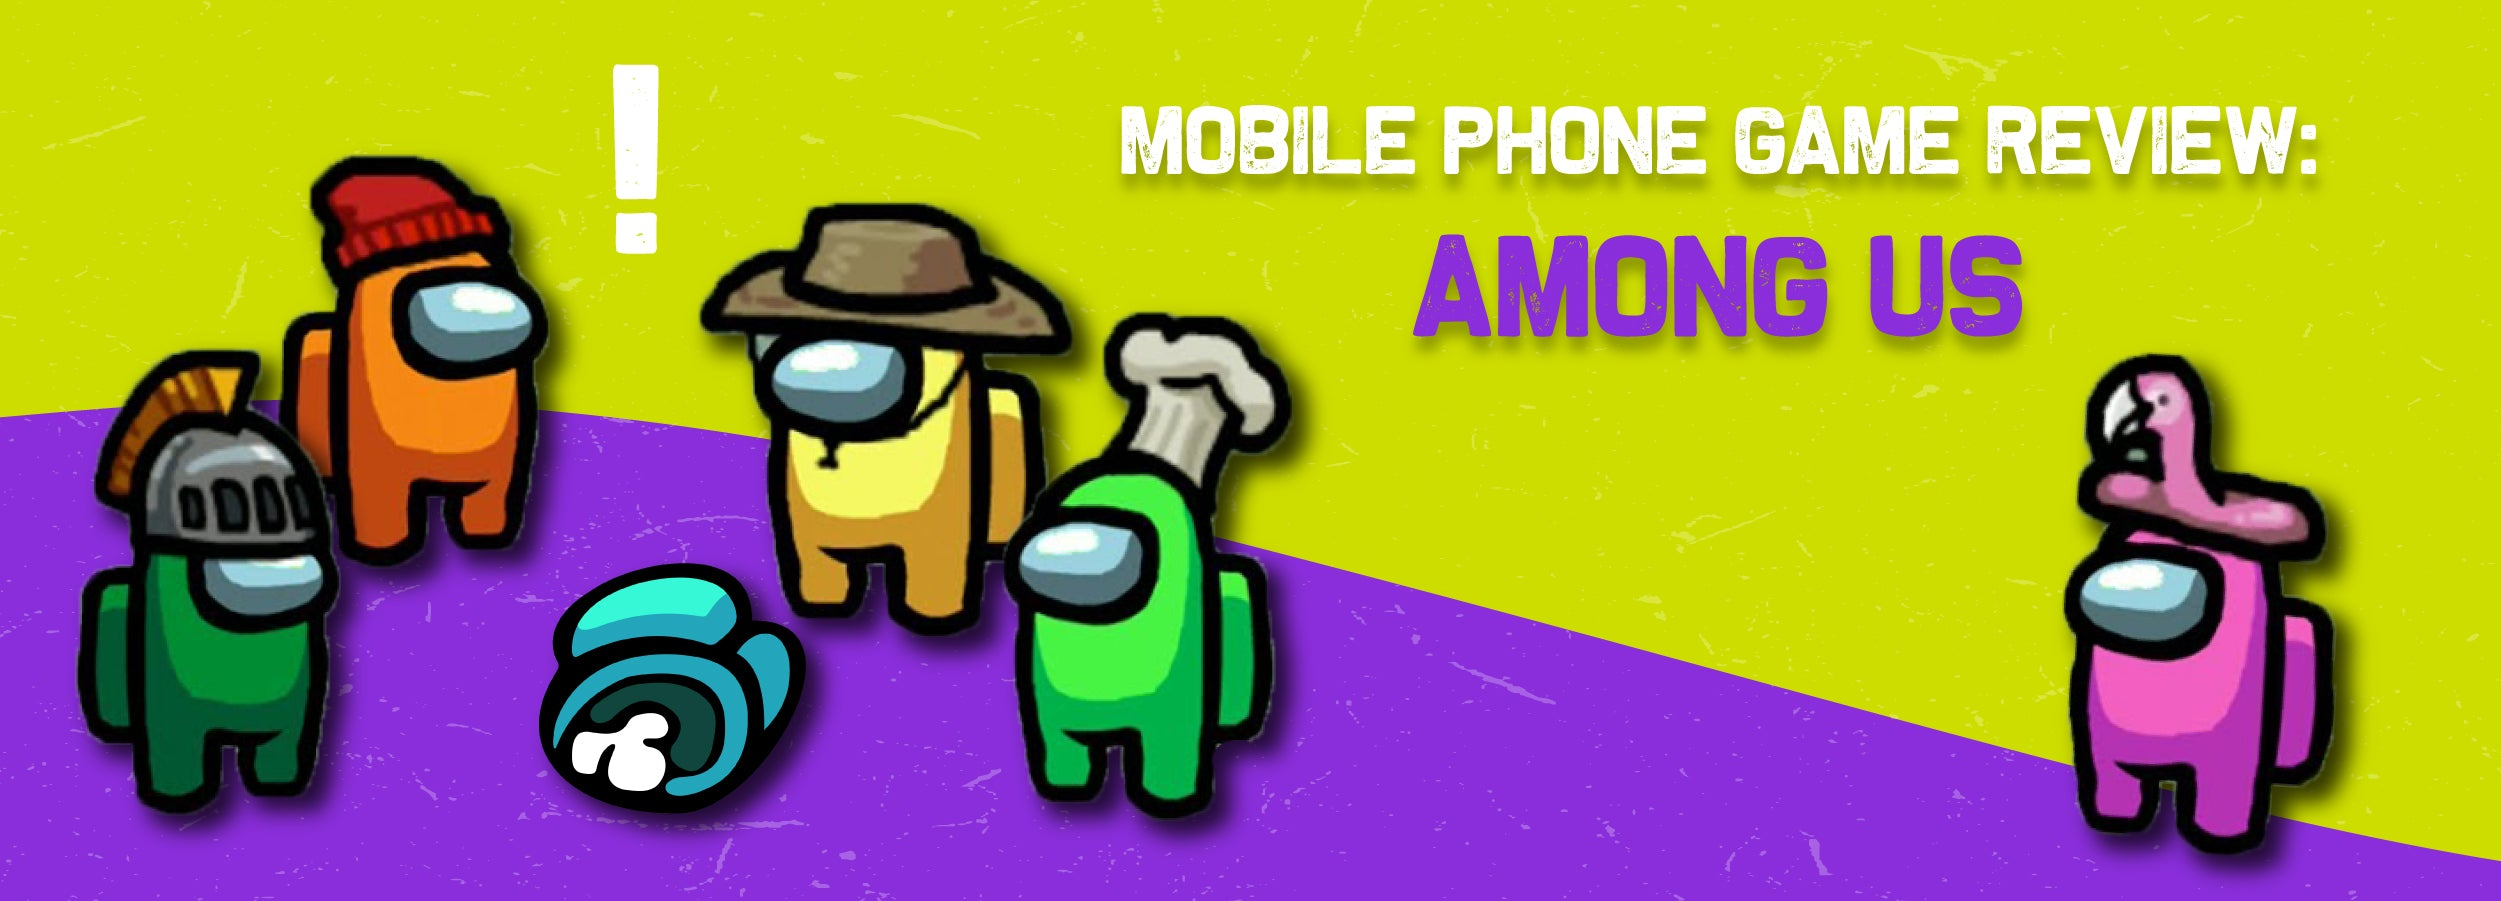 Mobile Phone Game Review: Among Us